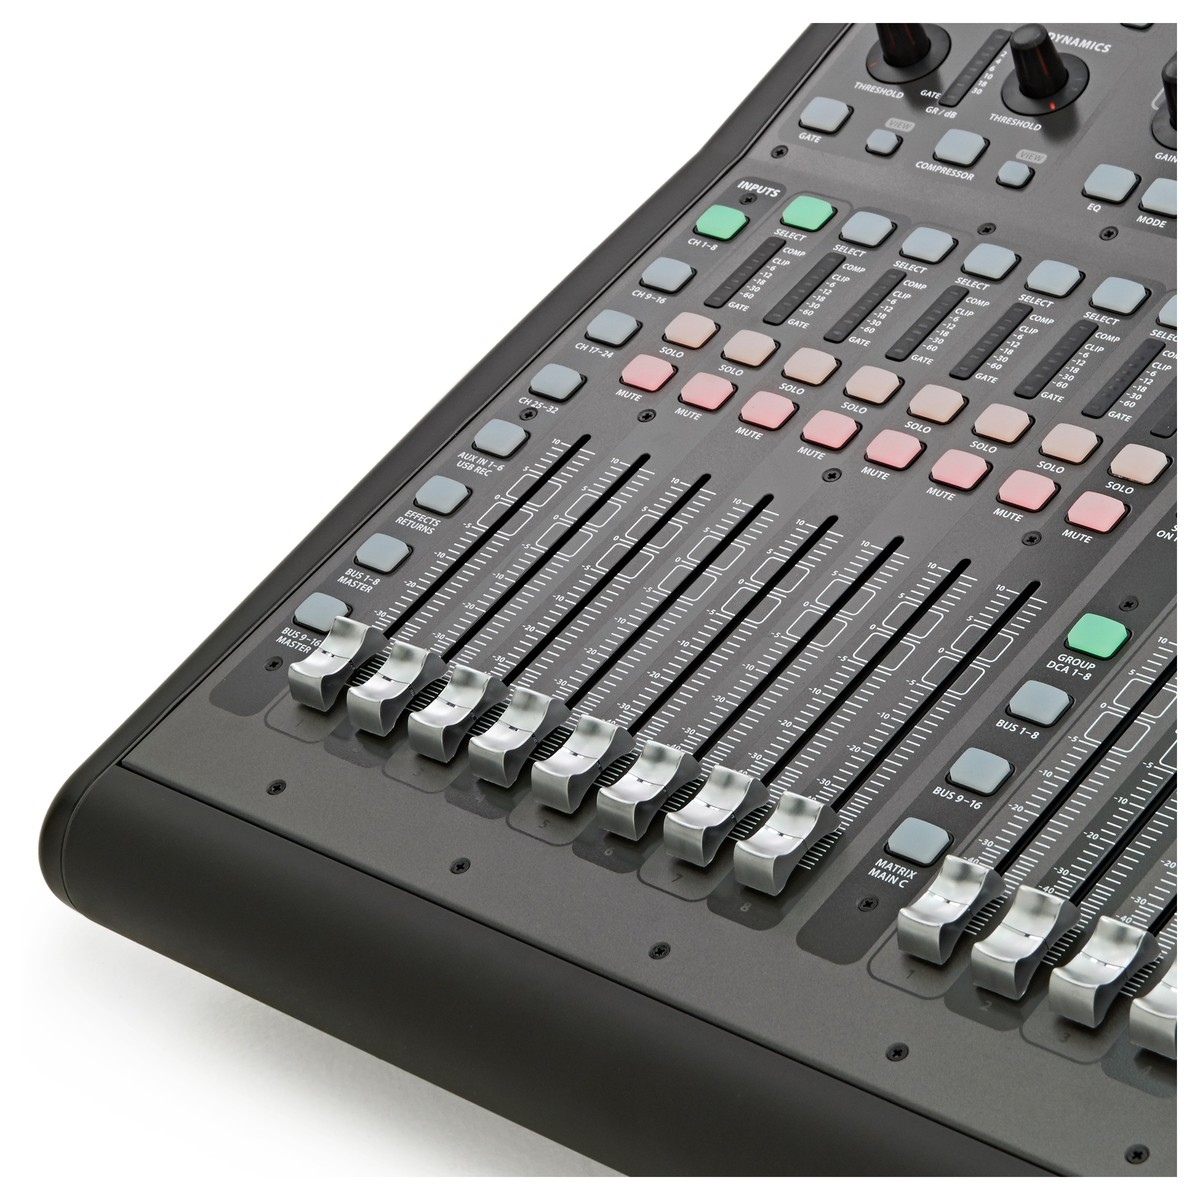 Behringer X32 Producer Digital Mixing Console At Gear4music Rack Live Performance Setup With S16 And P16 Monitor System